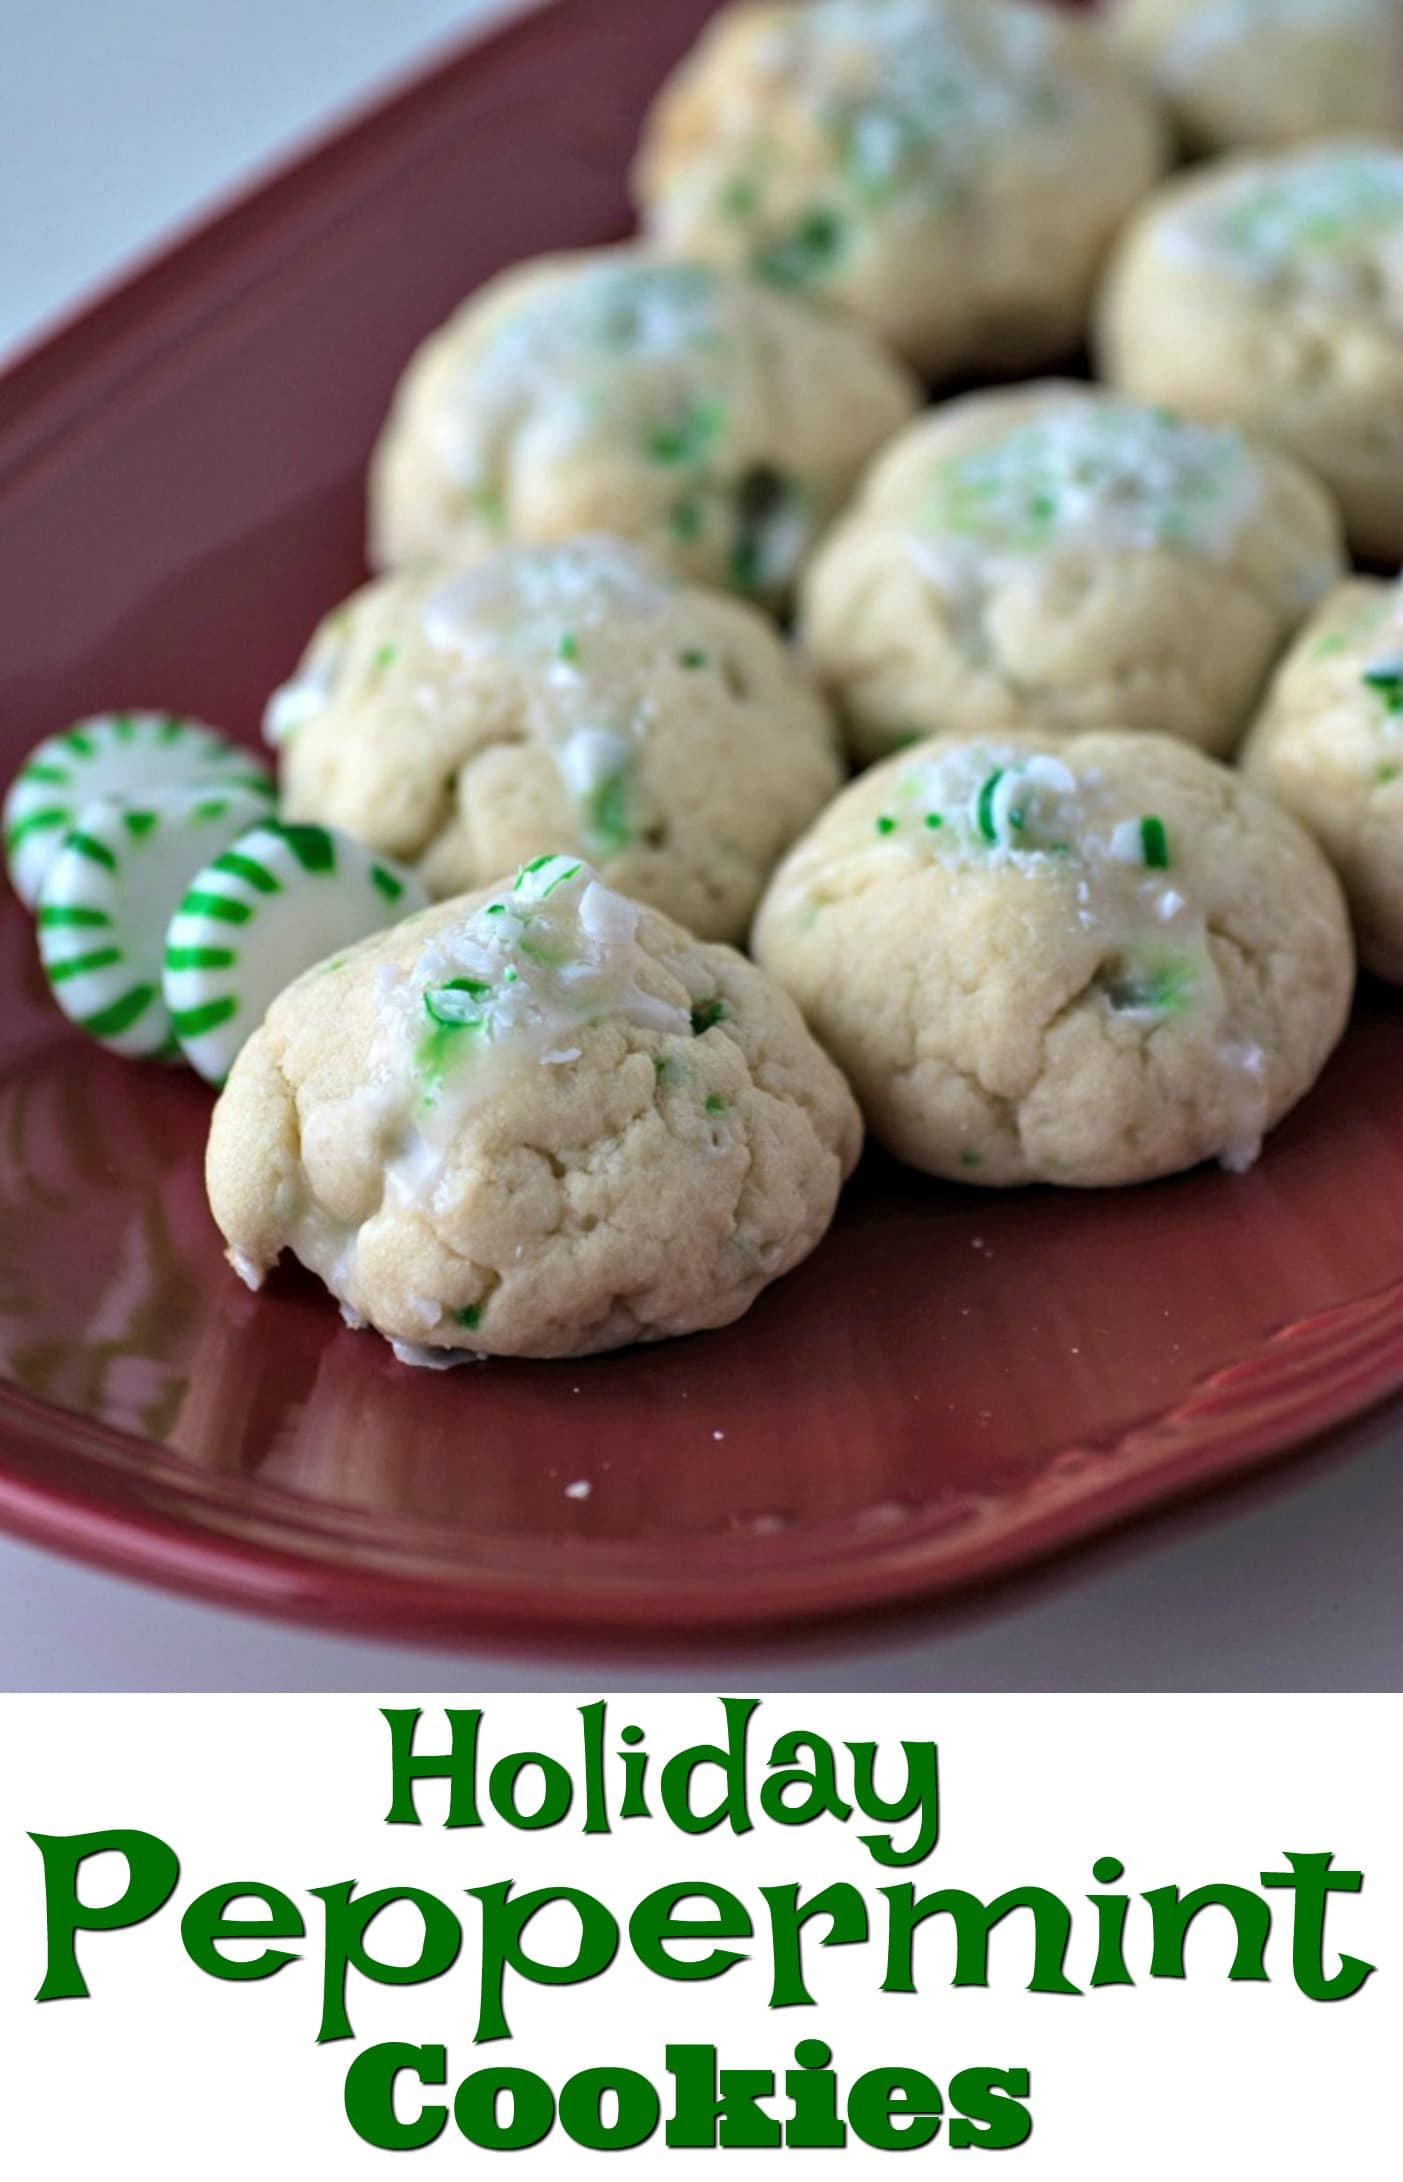 Peppermint Cookies | Easy to Make | Christmas Cookies | Green Peppermint Cookies | Holiday Cookies | Candy Cane | Recipe | Iced Peppermint Cookies